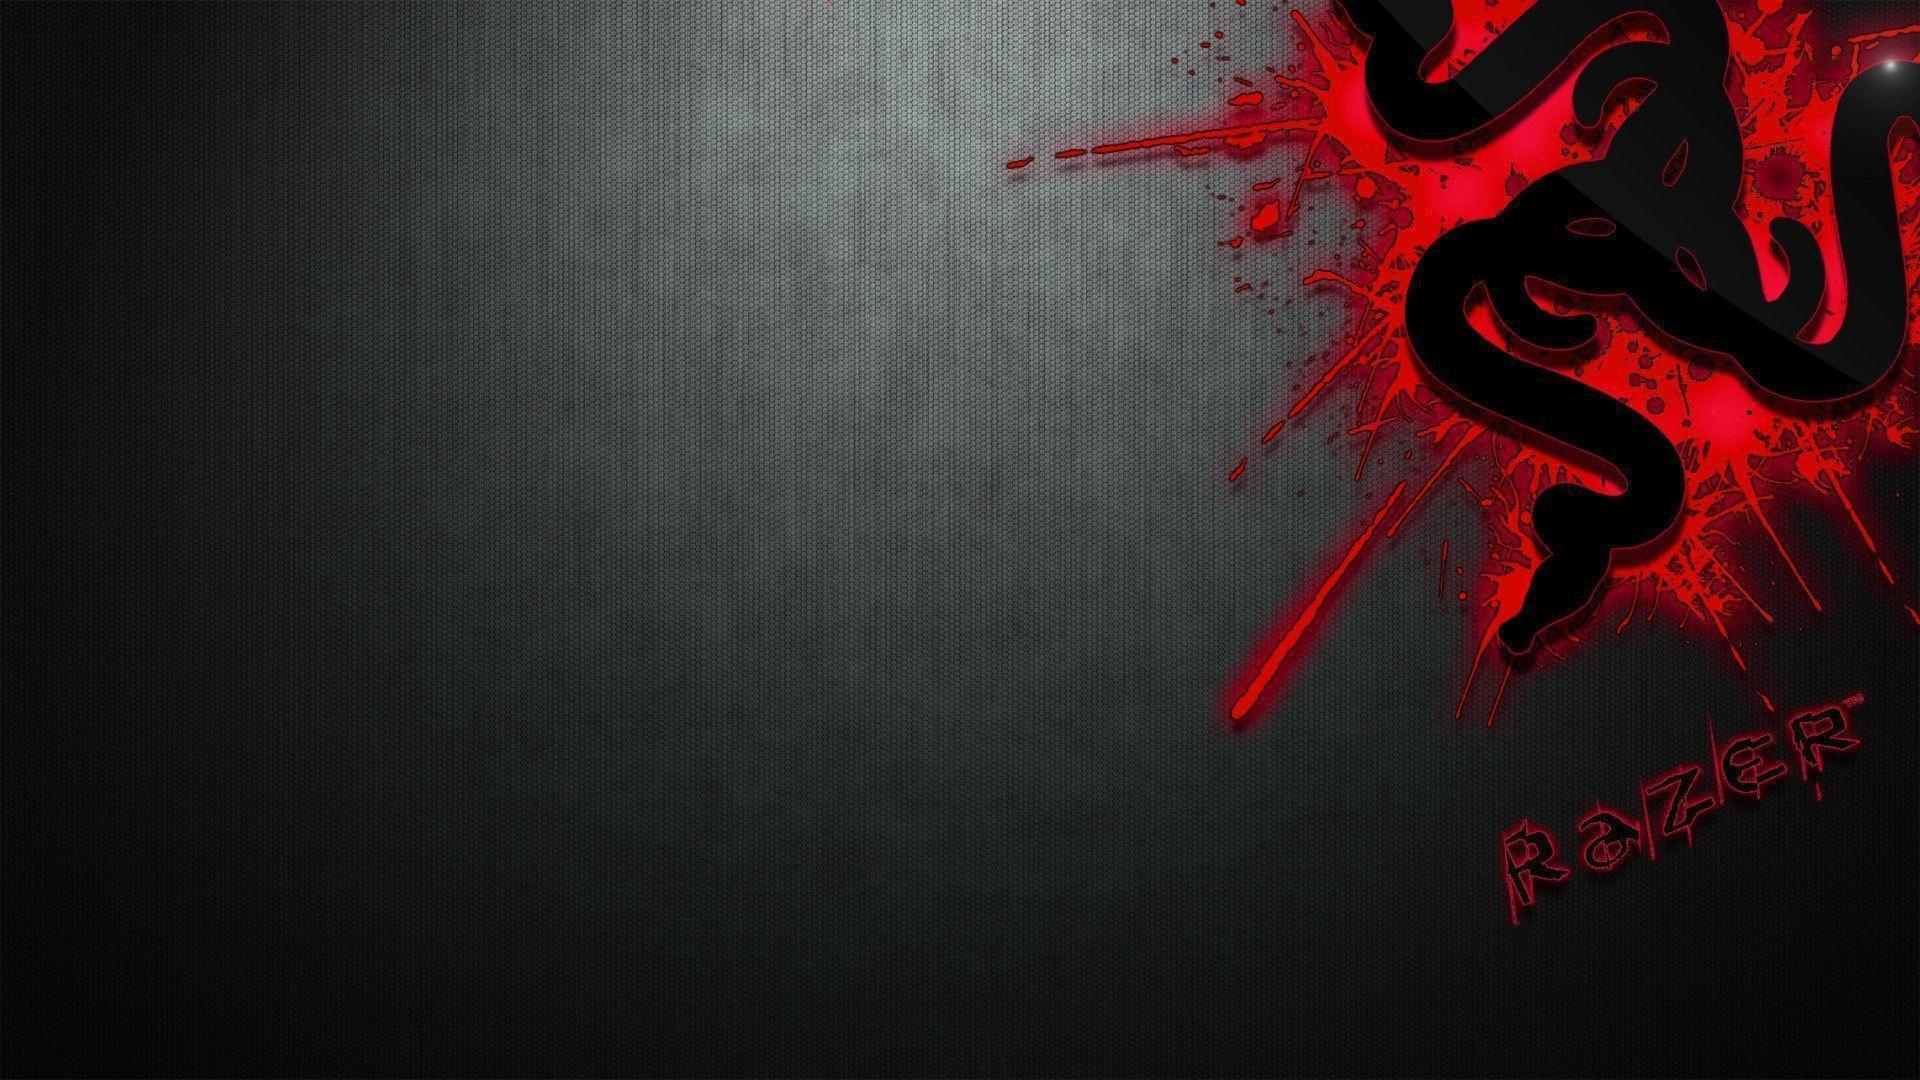 razer wallpaper 1920x1080 red - photo #1